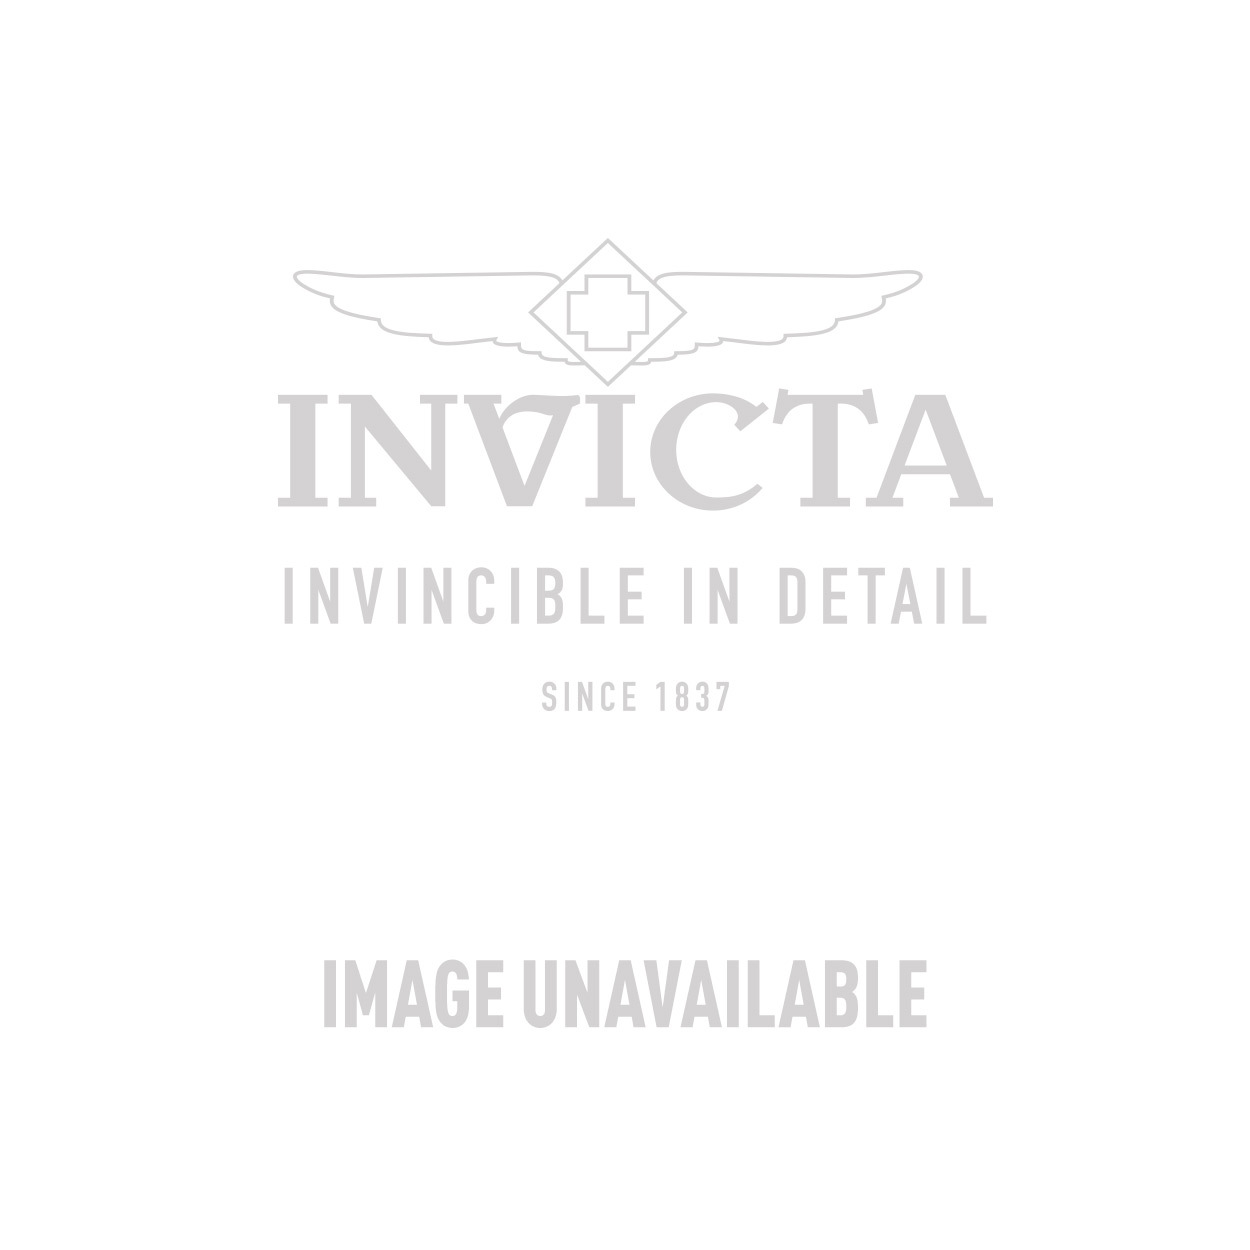 Invicta Subaqua Swiss Made Quartz Watch - Gunmetal, Stainless Steel case Stainless Steel band - Model 90260